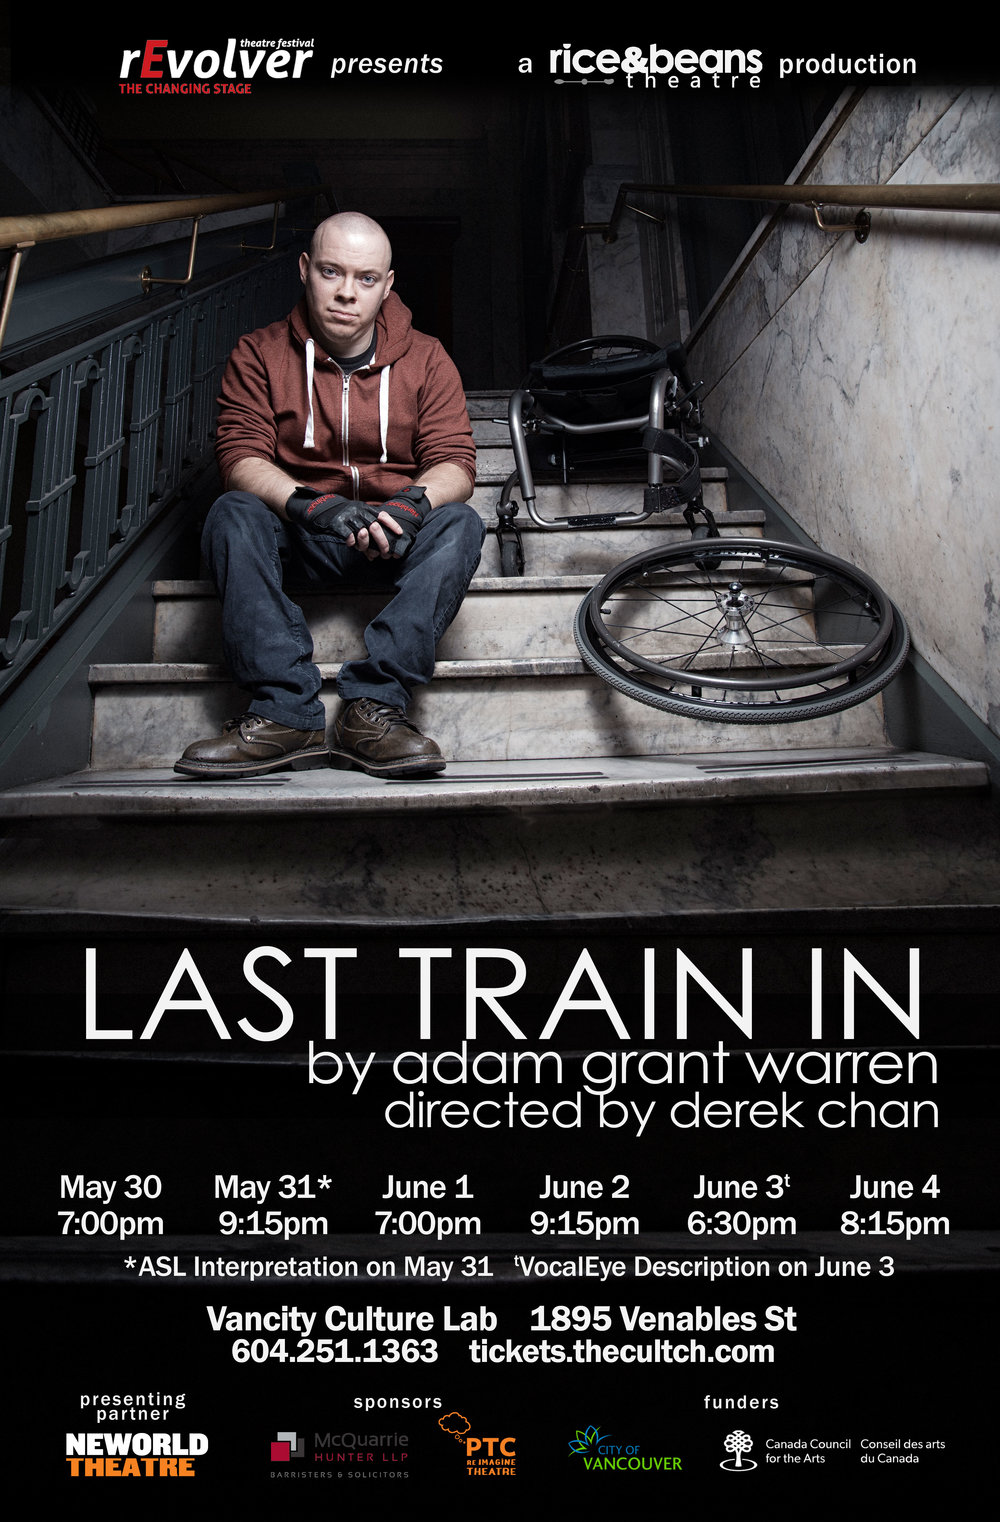 Last-Train-In_rEvolver_Apr21.jpg